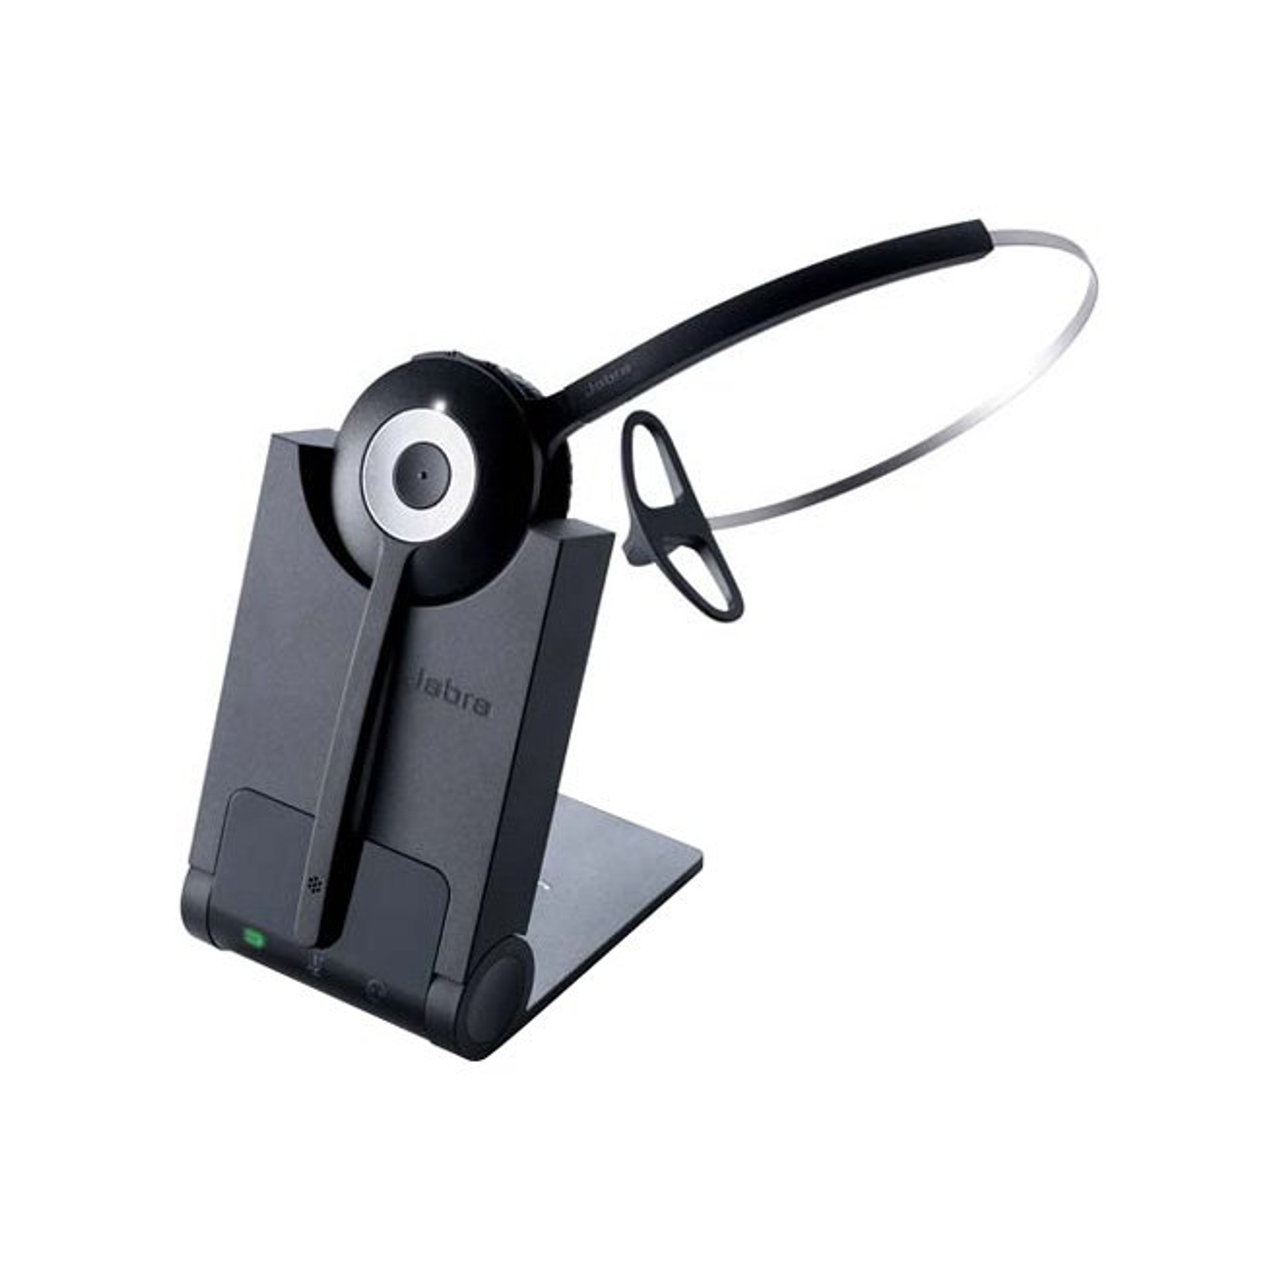 Wireless Headset for Cisco 7942 / 7942G IP Phone PRO920